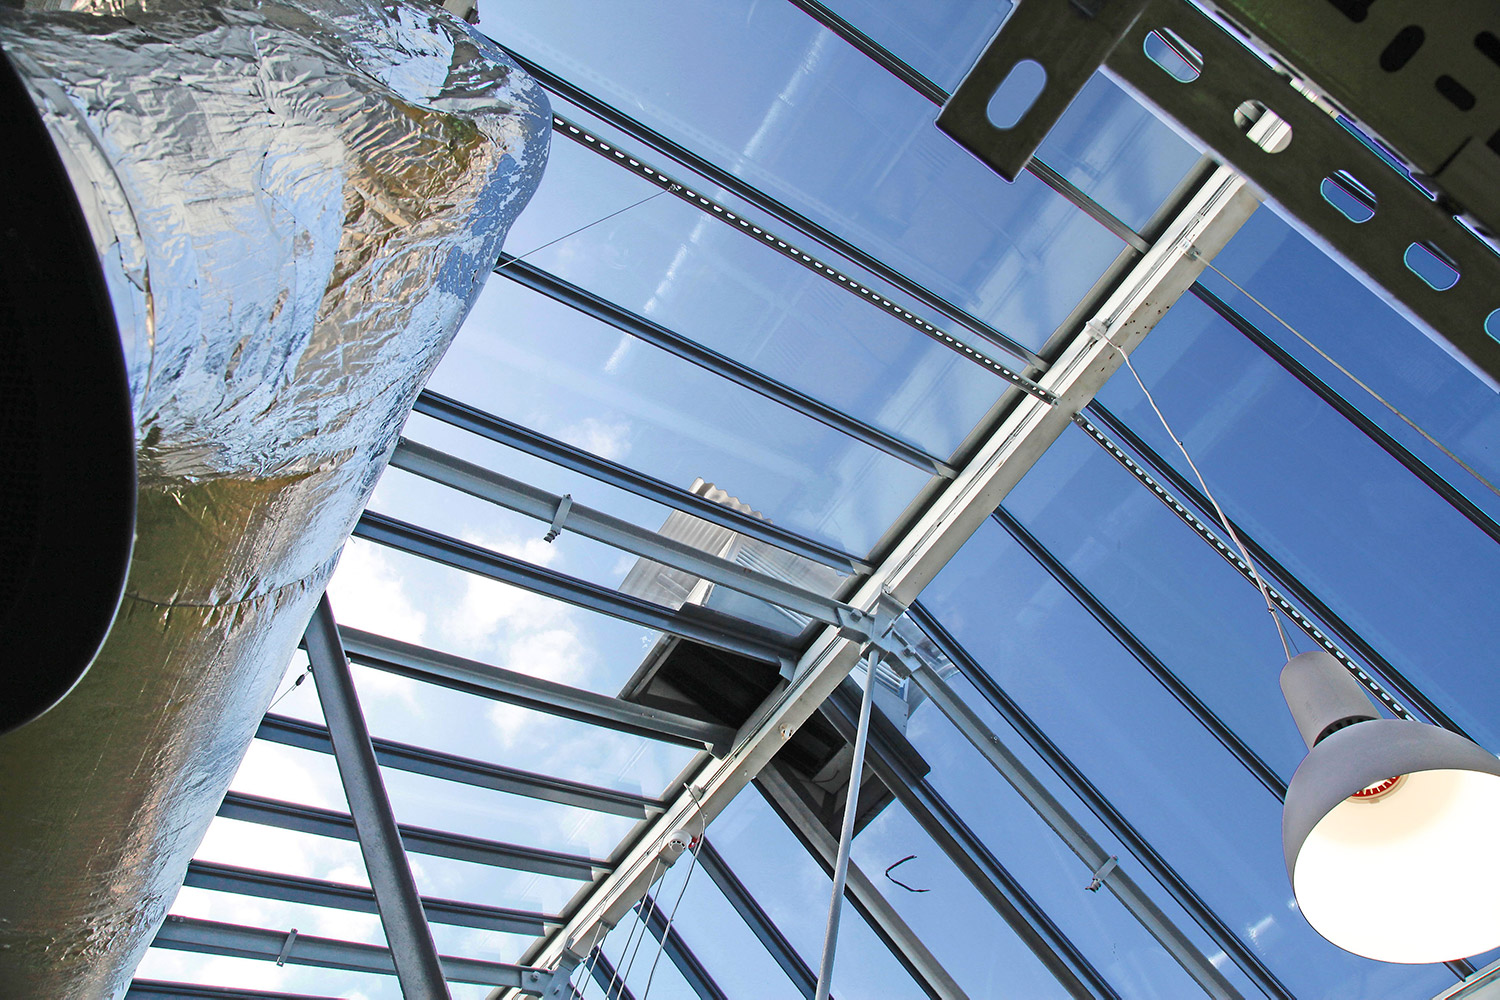 glass roof design in Swindon at Workshed design studio